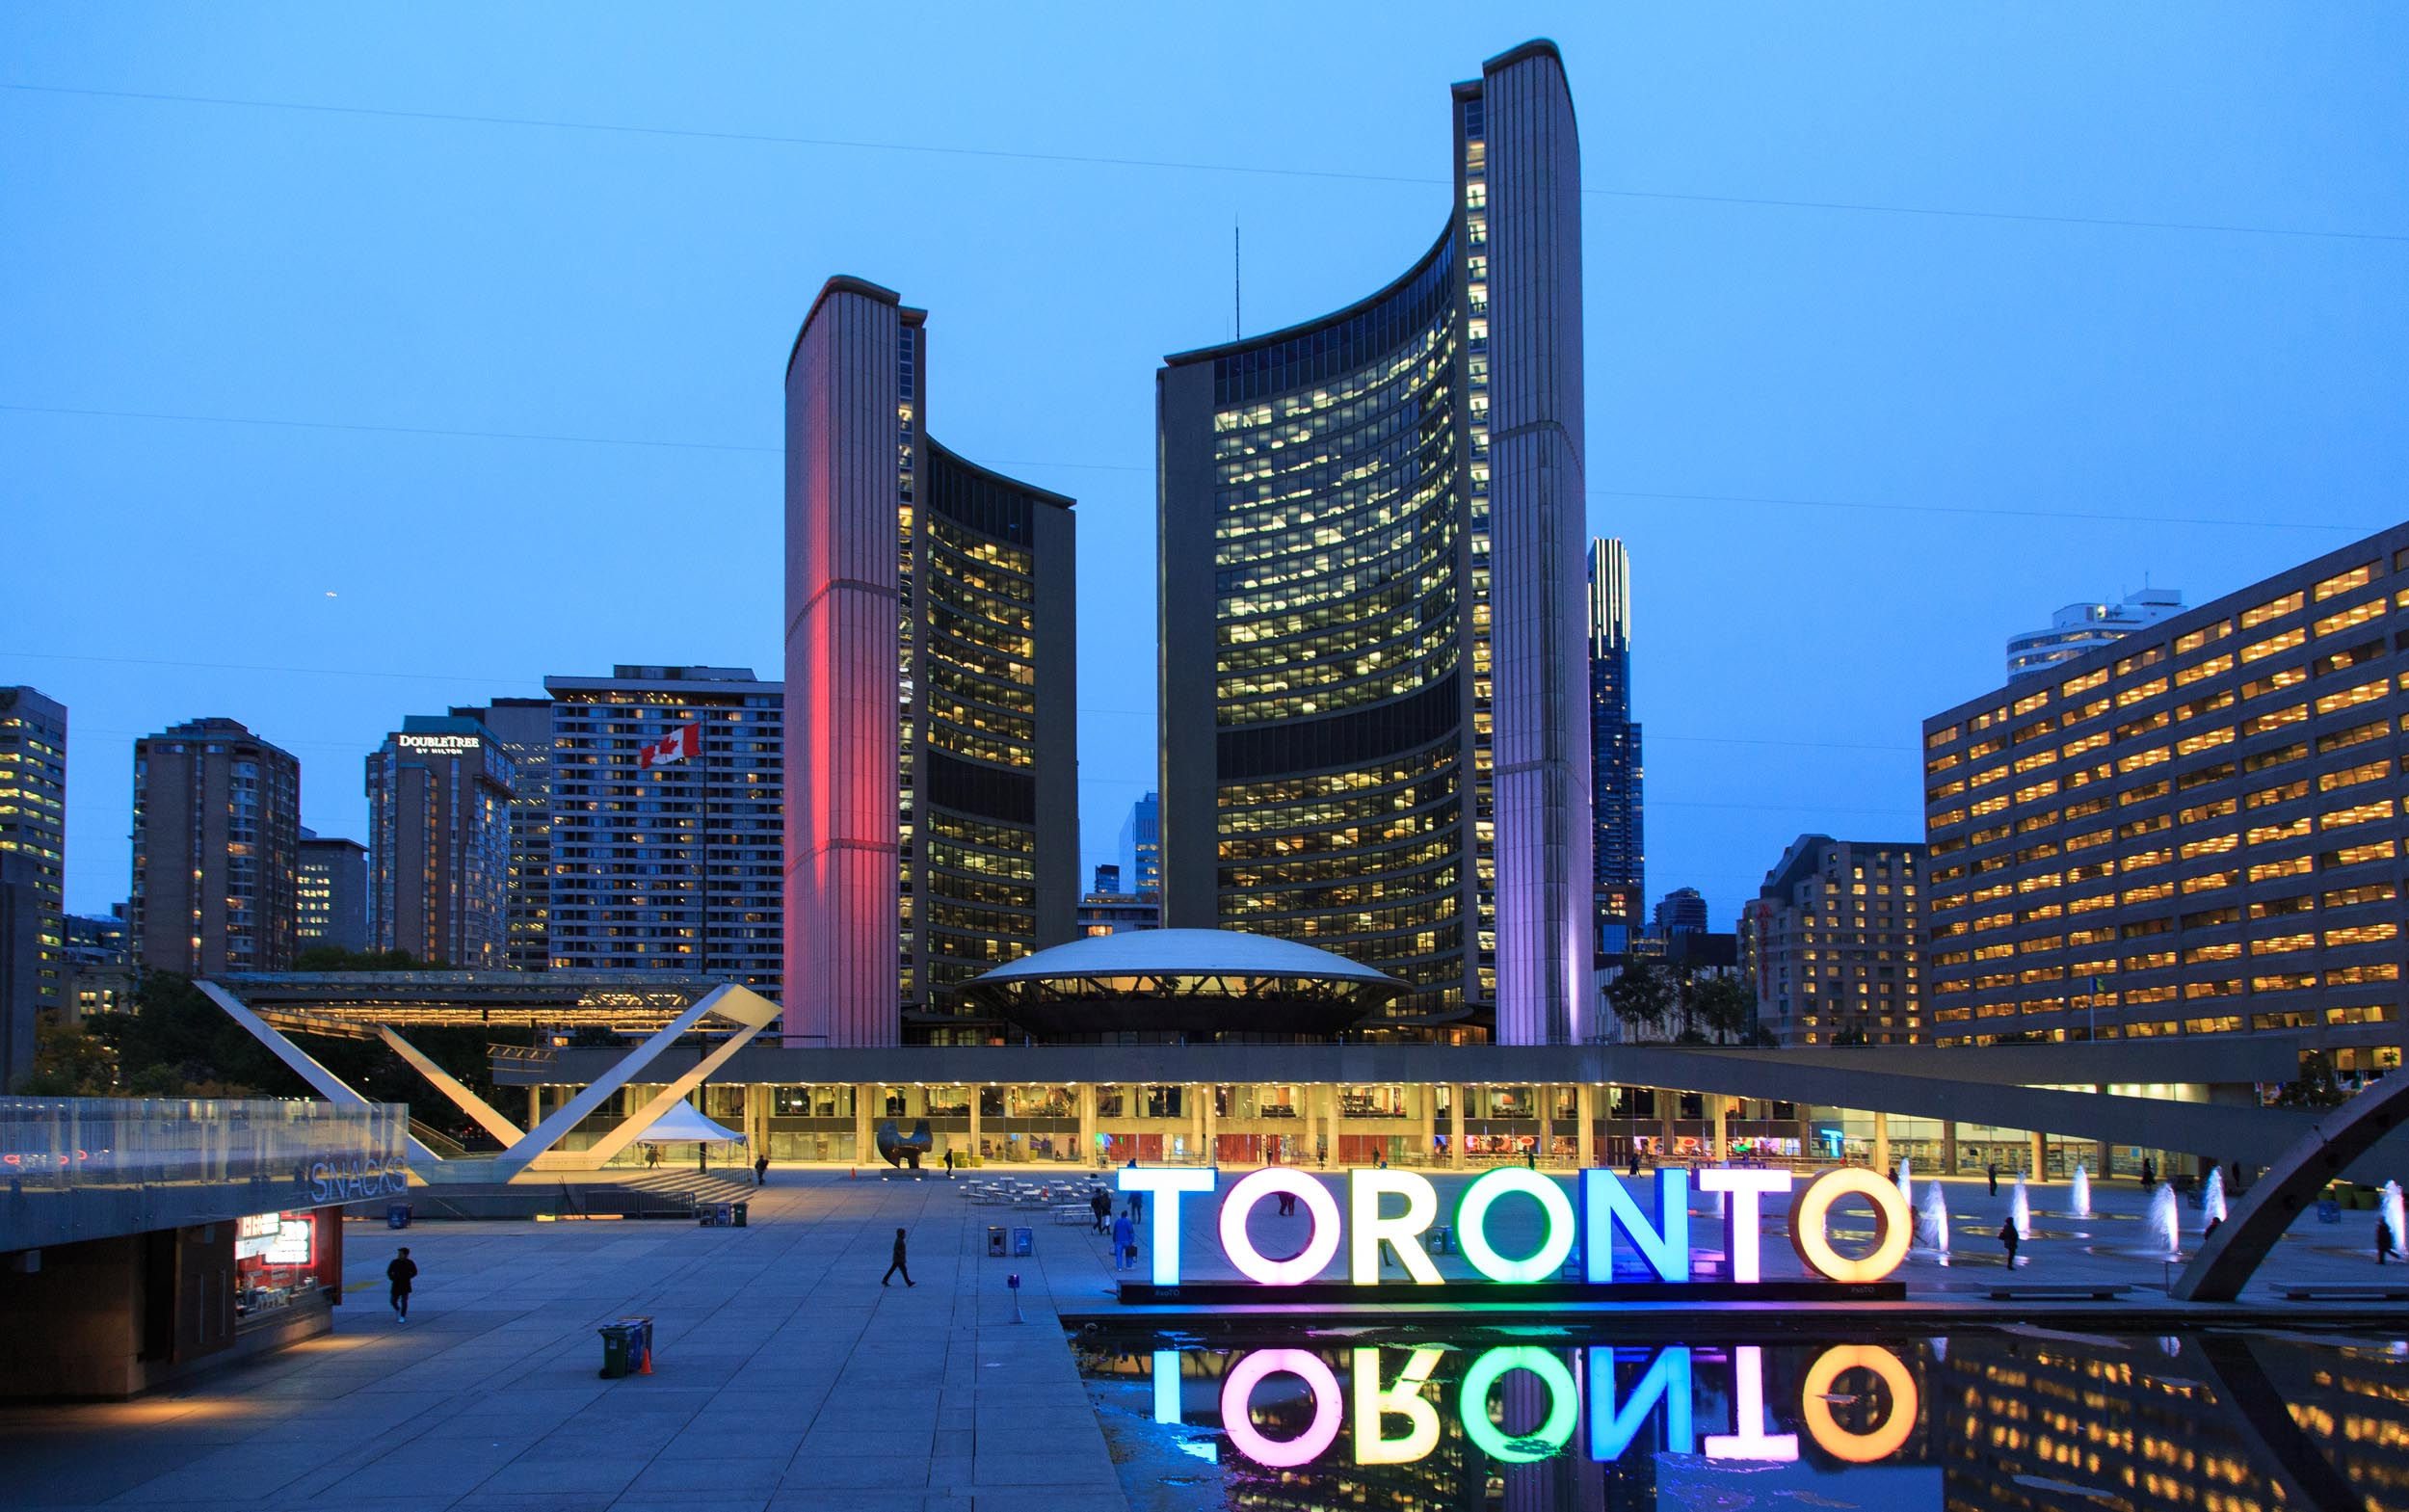 Professional Toronto Travel Photography of City Hall and Nathan Phillips Square by Worker Bee Supply